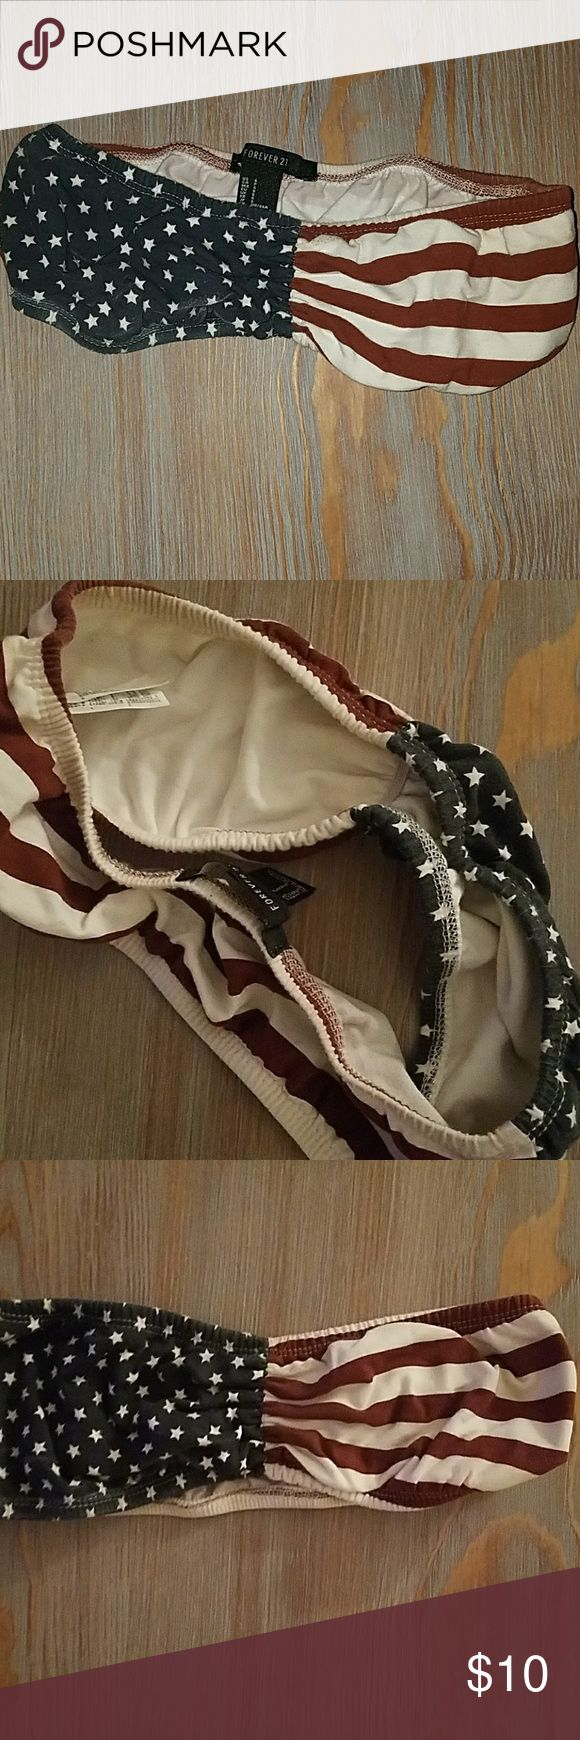 American Flag Bandeau Stretchy size small american flag bandeau. Super cute for fourth of july or country concerts. Like new condition. Im not sure if i have ever worn it maybe once. Forever 21 Intimates & Sleepwear Bandeaus